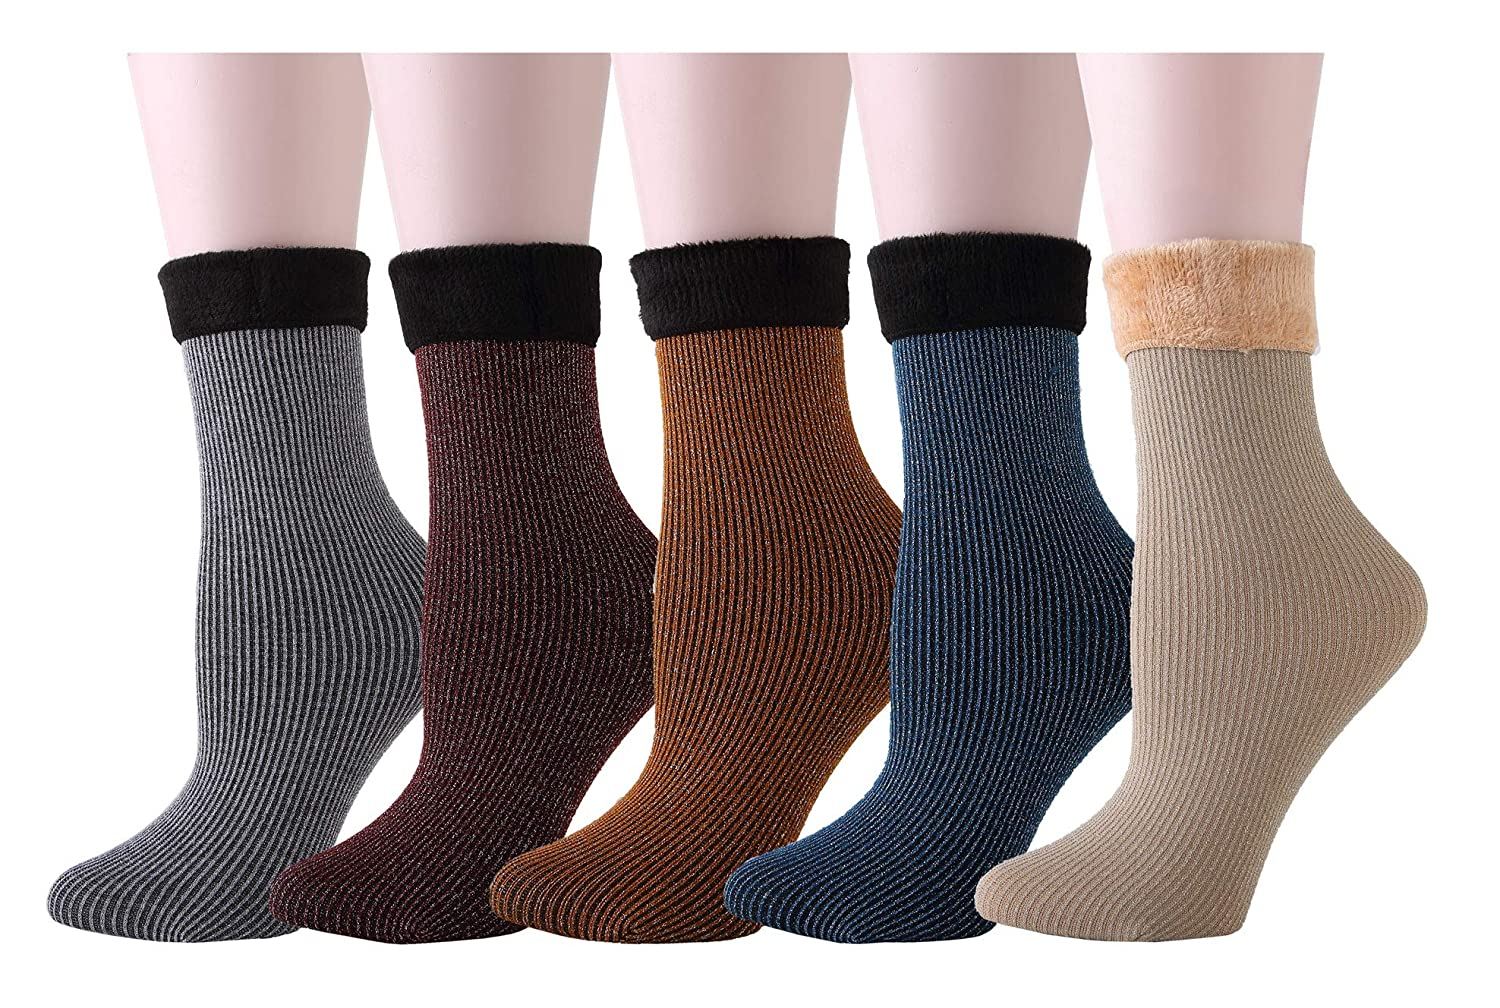 4886aa7f1a38e Women 4 Pairs Super Thick Fleece Lined Warm Socks Non-Slip Knitted Ankle  Slipper Socks (Women-2 (4 Pairs)): Amazon.co.uk: Clothing